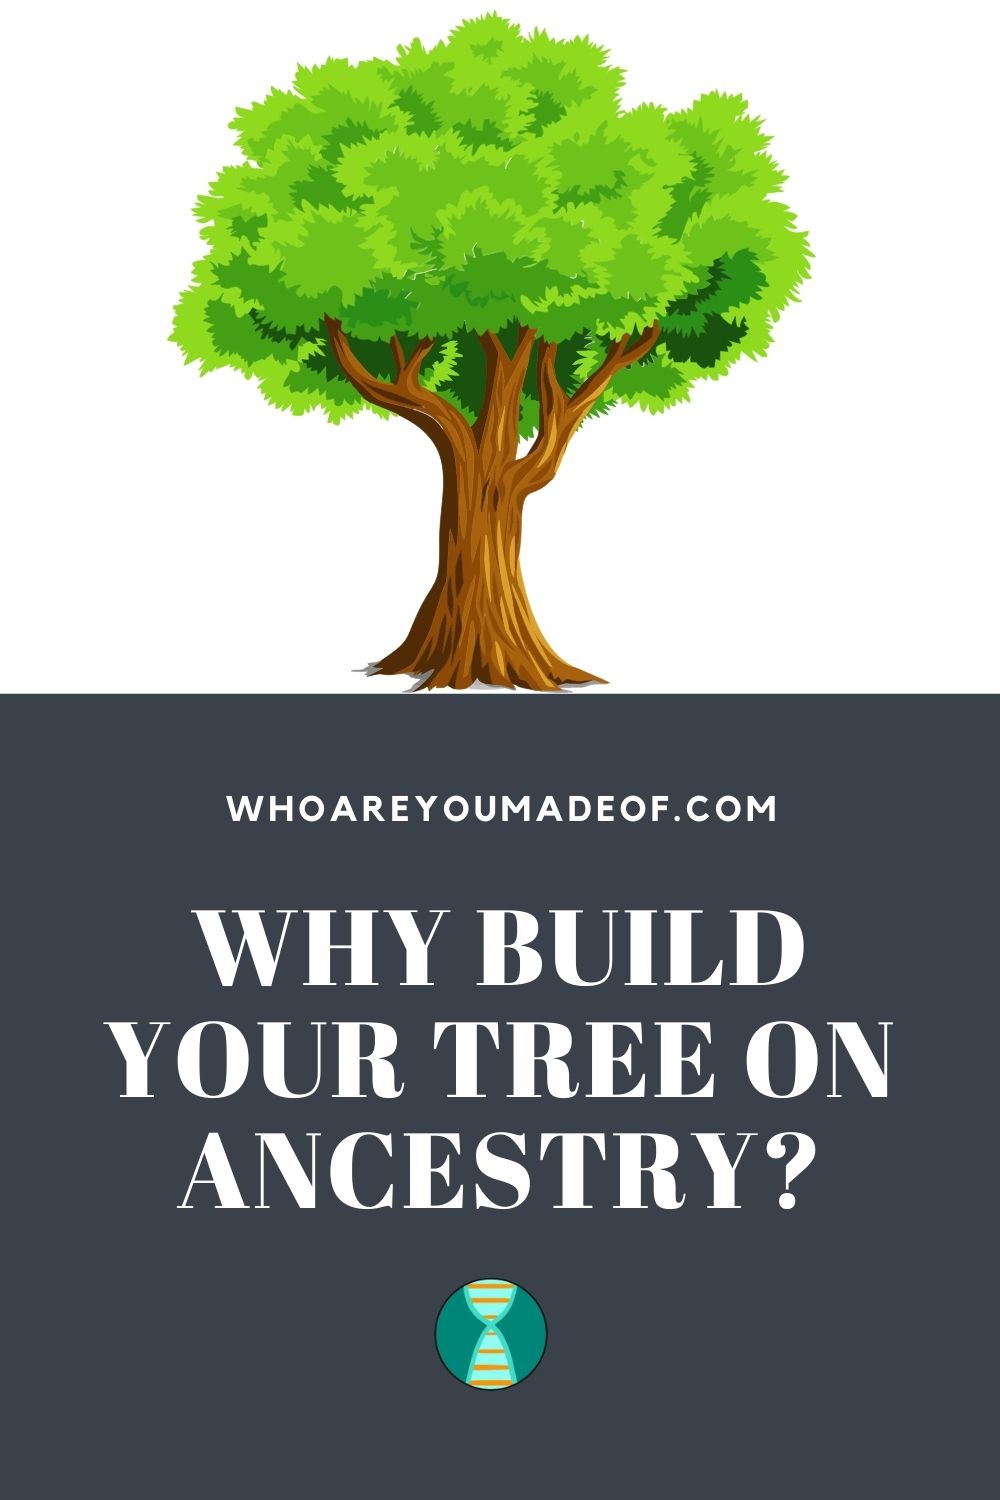 Why Build Your Tree on Ancestry Pinterest Image